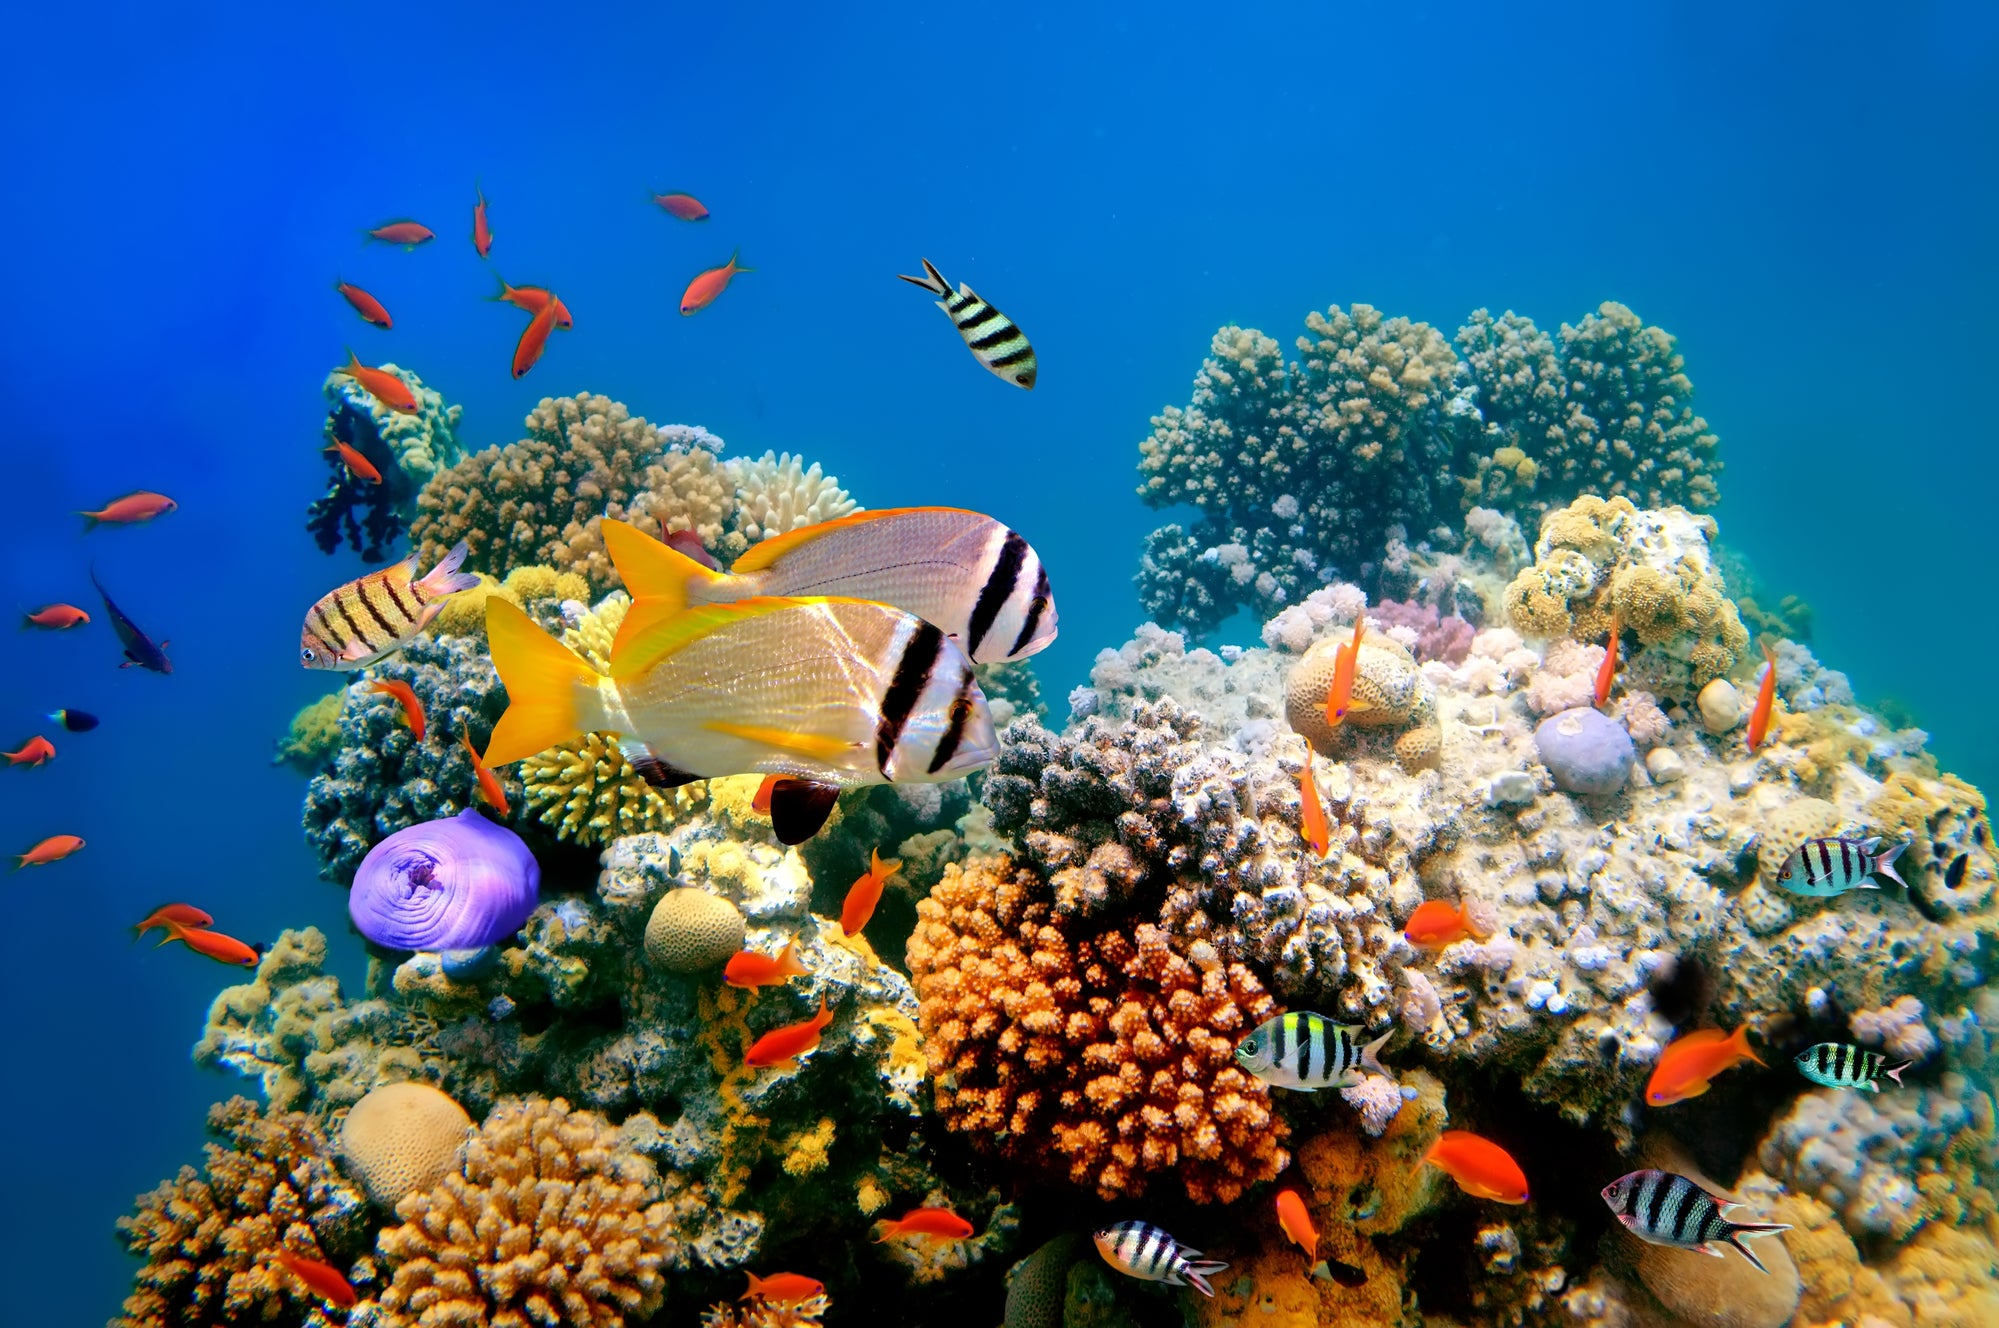 We can save coral reefs by putting them on ice